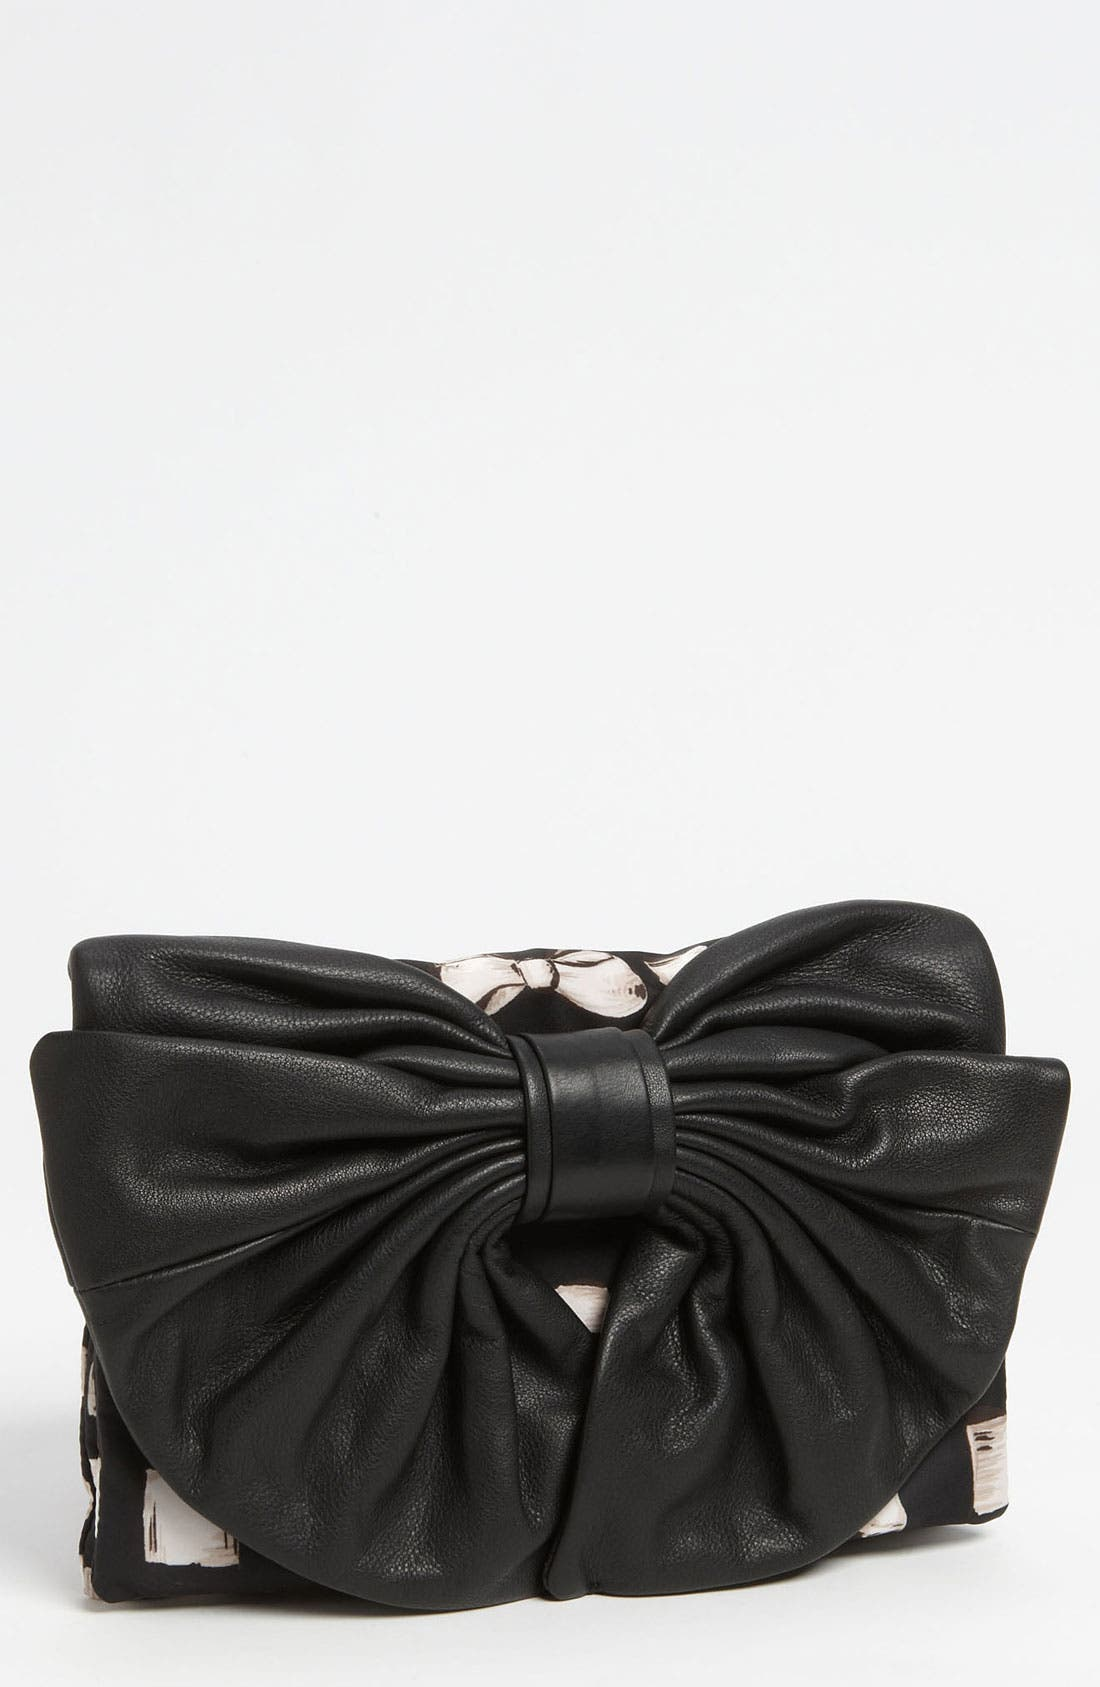 Main Image - RED Valentino 'Bow' Print Clutch